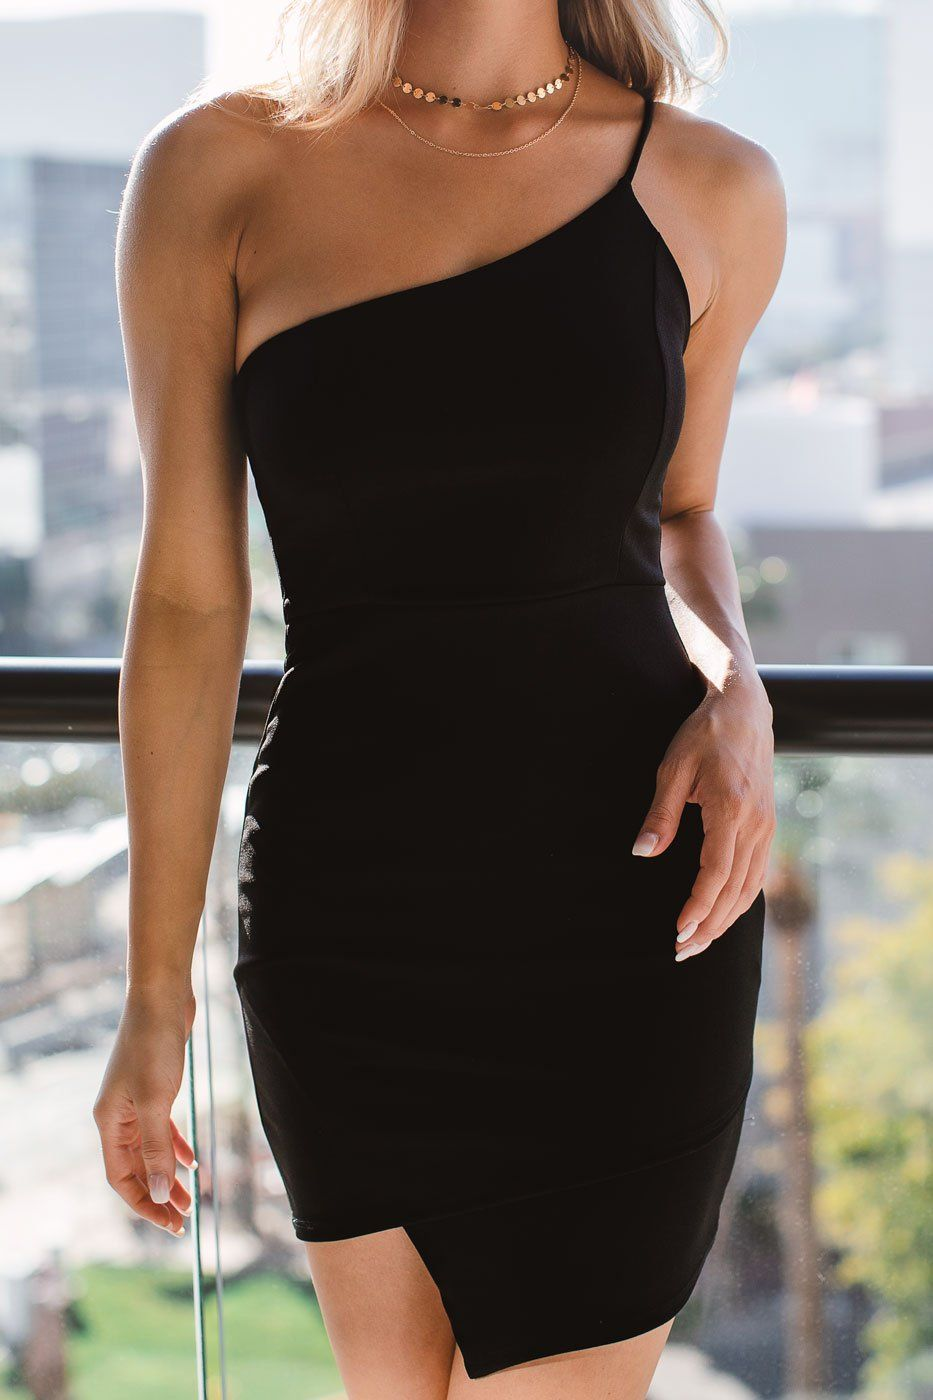 The City At Night Black Asymmetrical Bodycon Dress